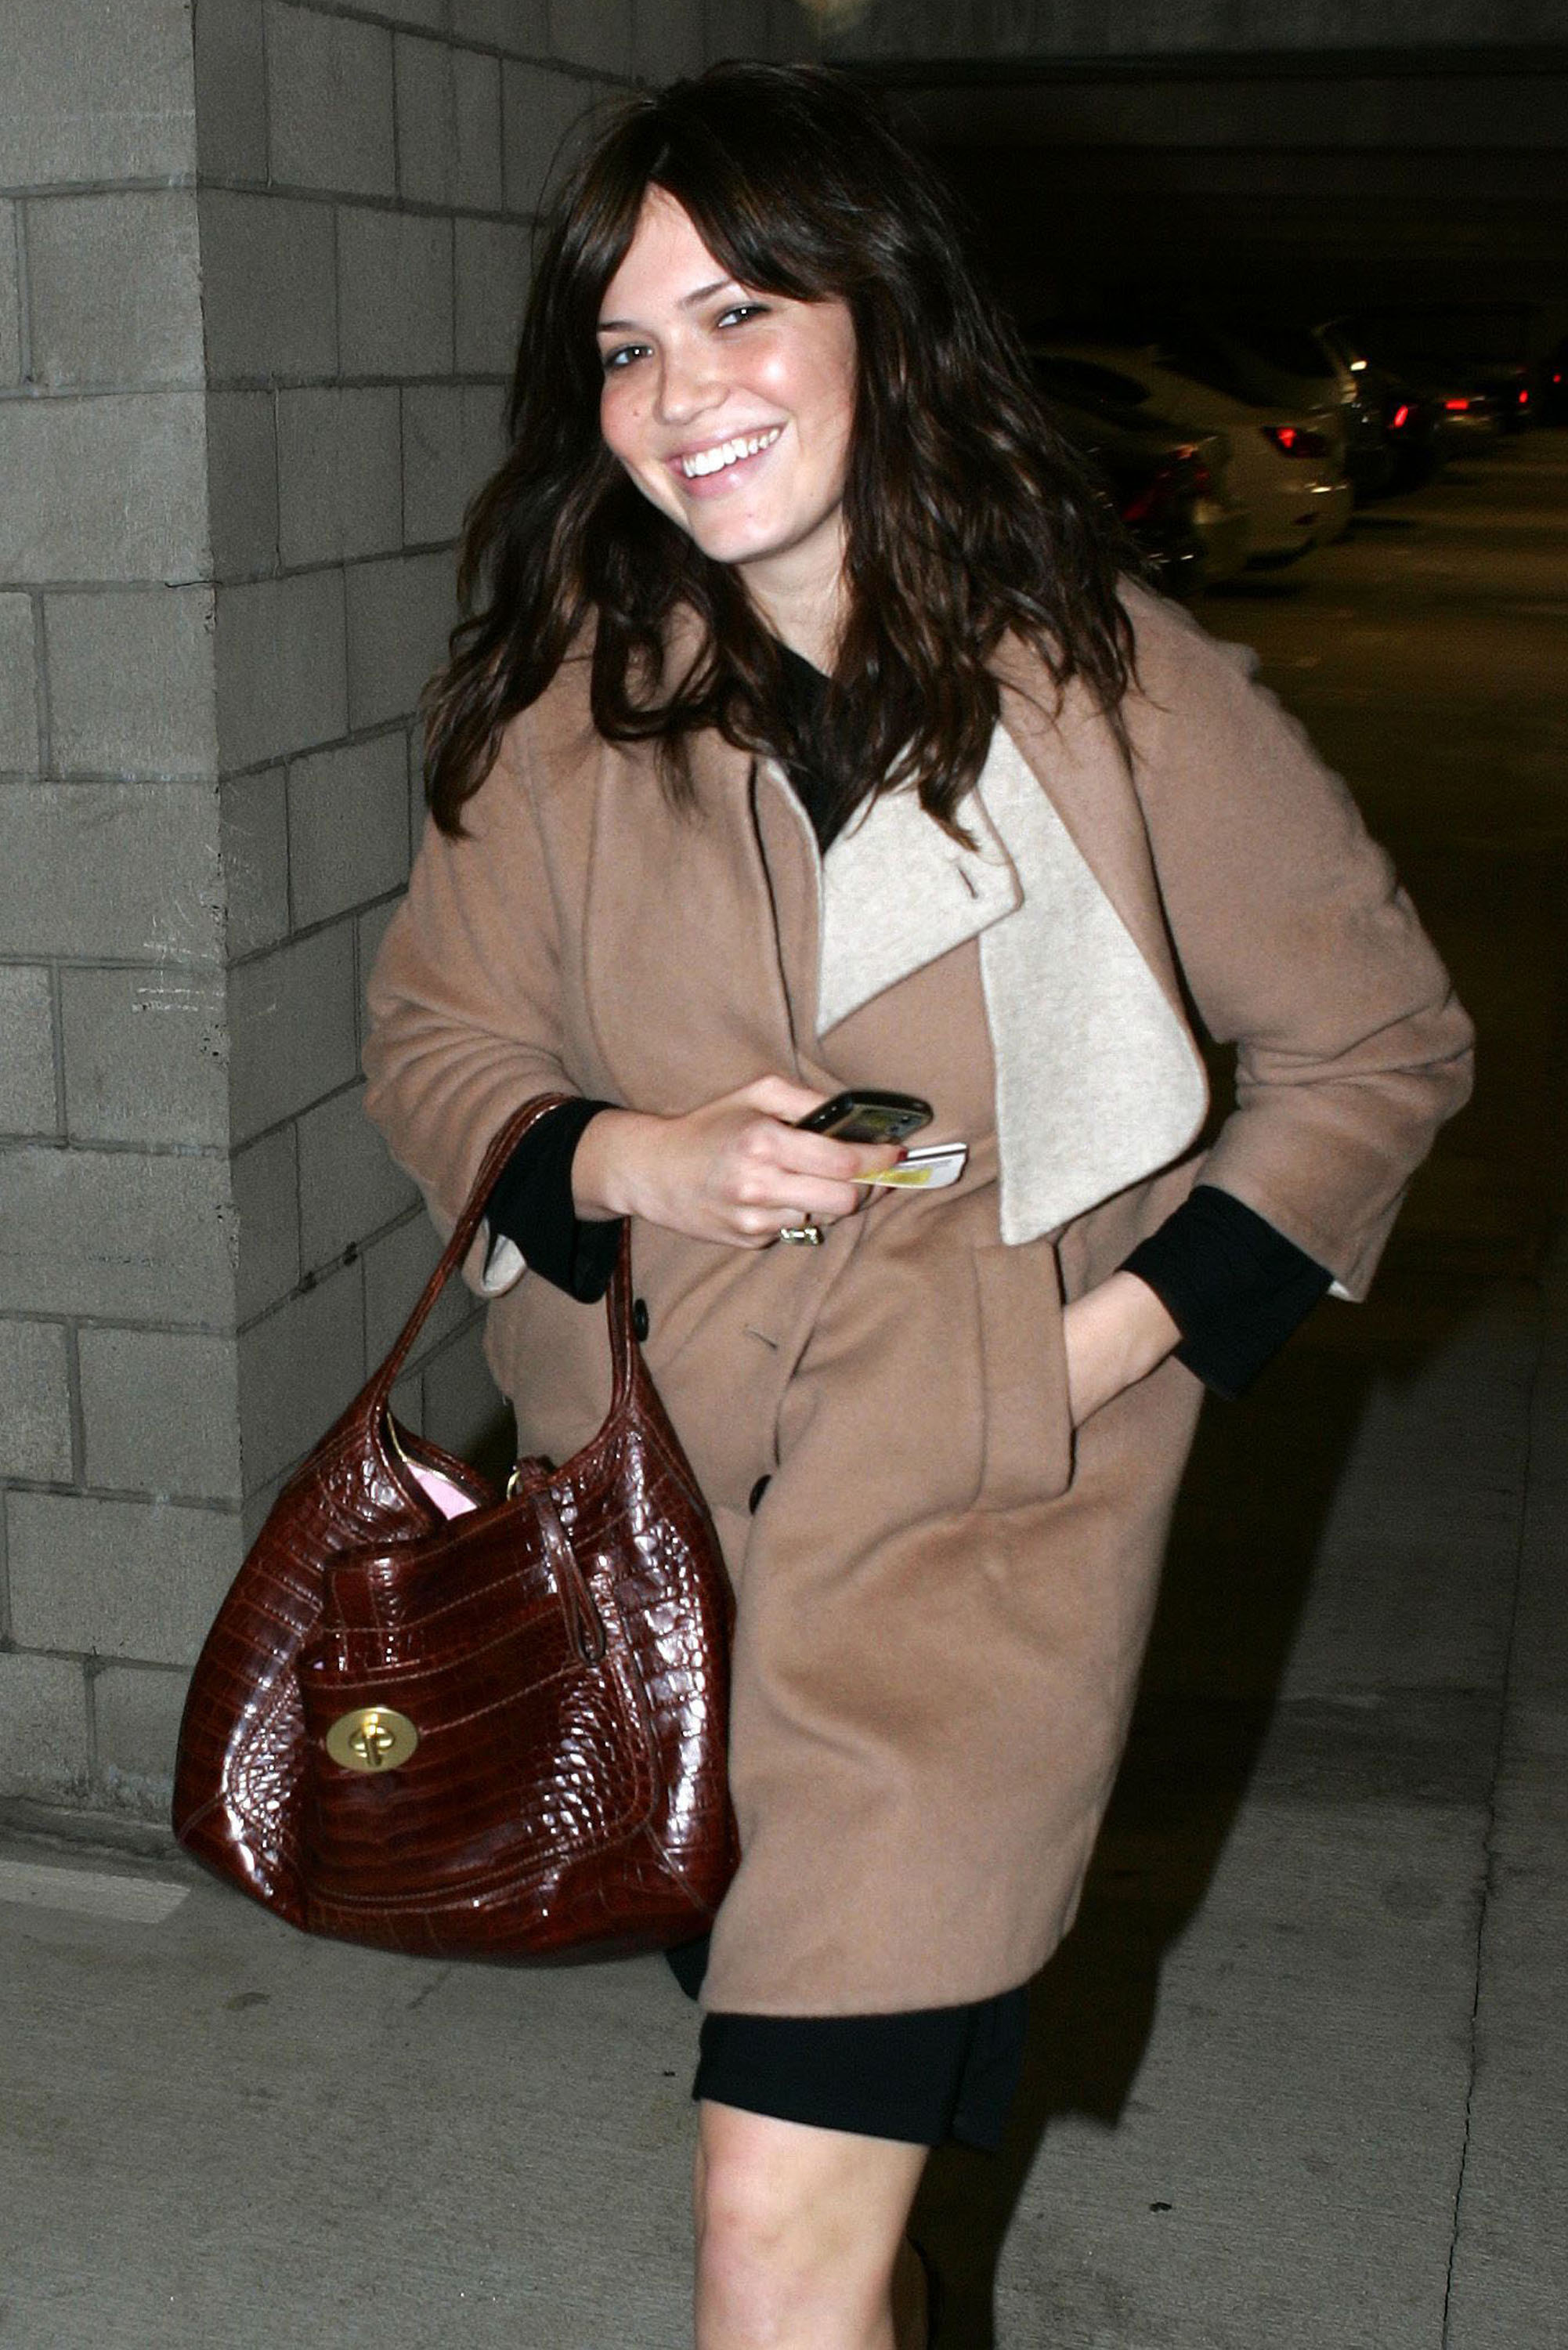 67701_celeb-city.eu_Mandy_Moore_out_and_about_in_West_Hollywood_10.12.2007_19_122_231lo.jpg